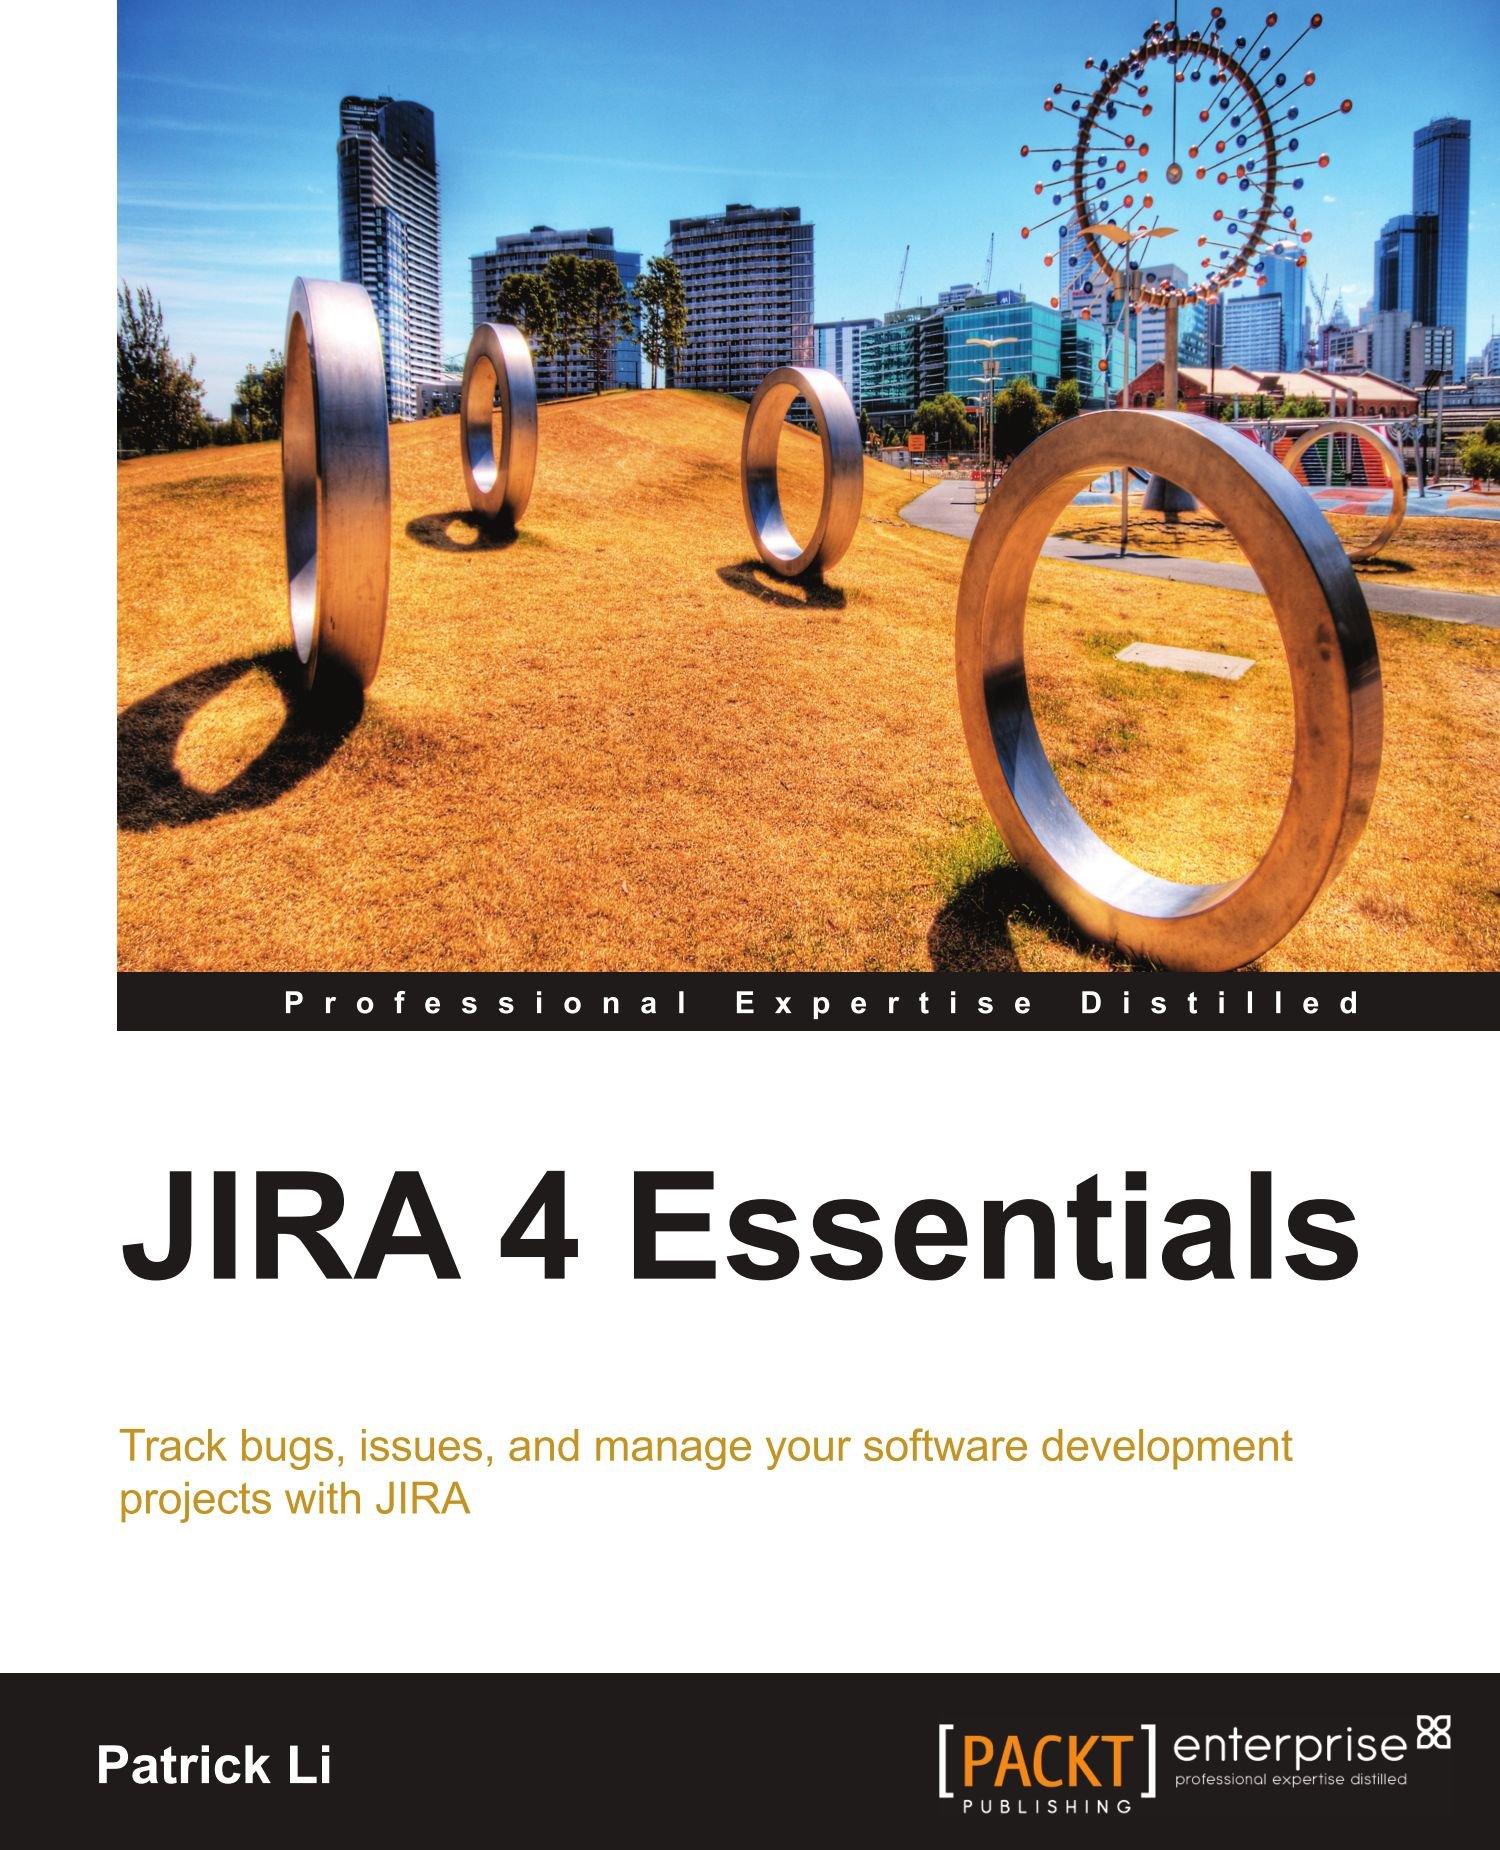 How to lose weight using jira